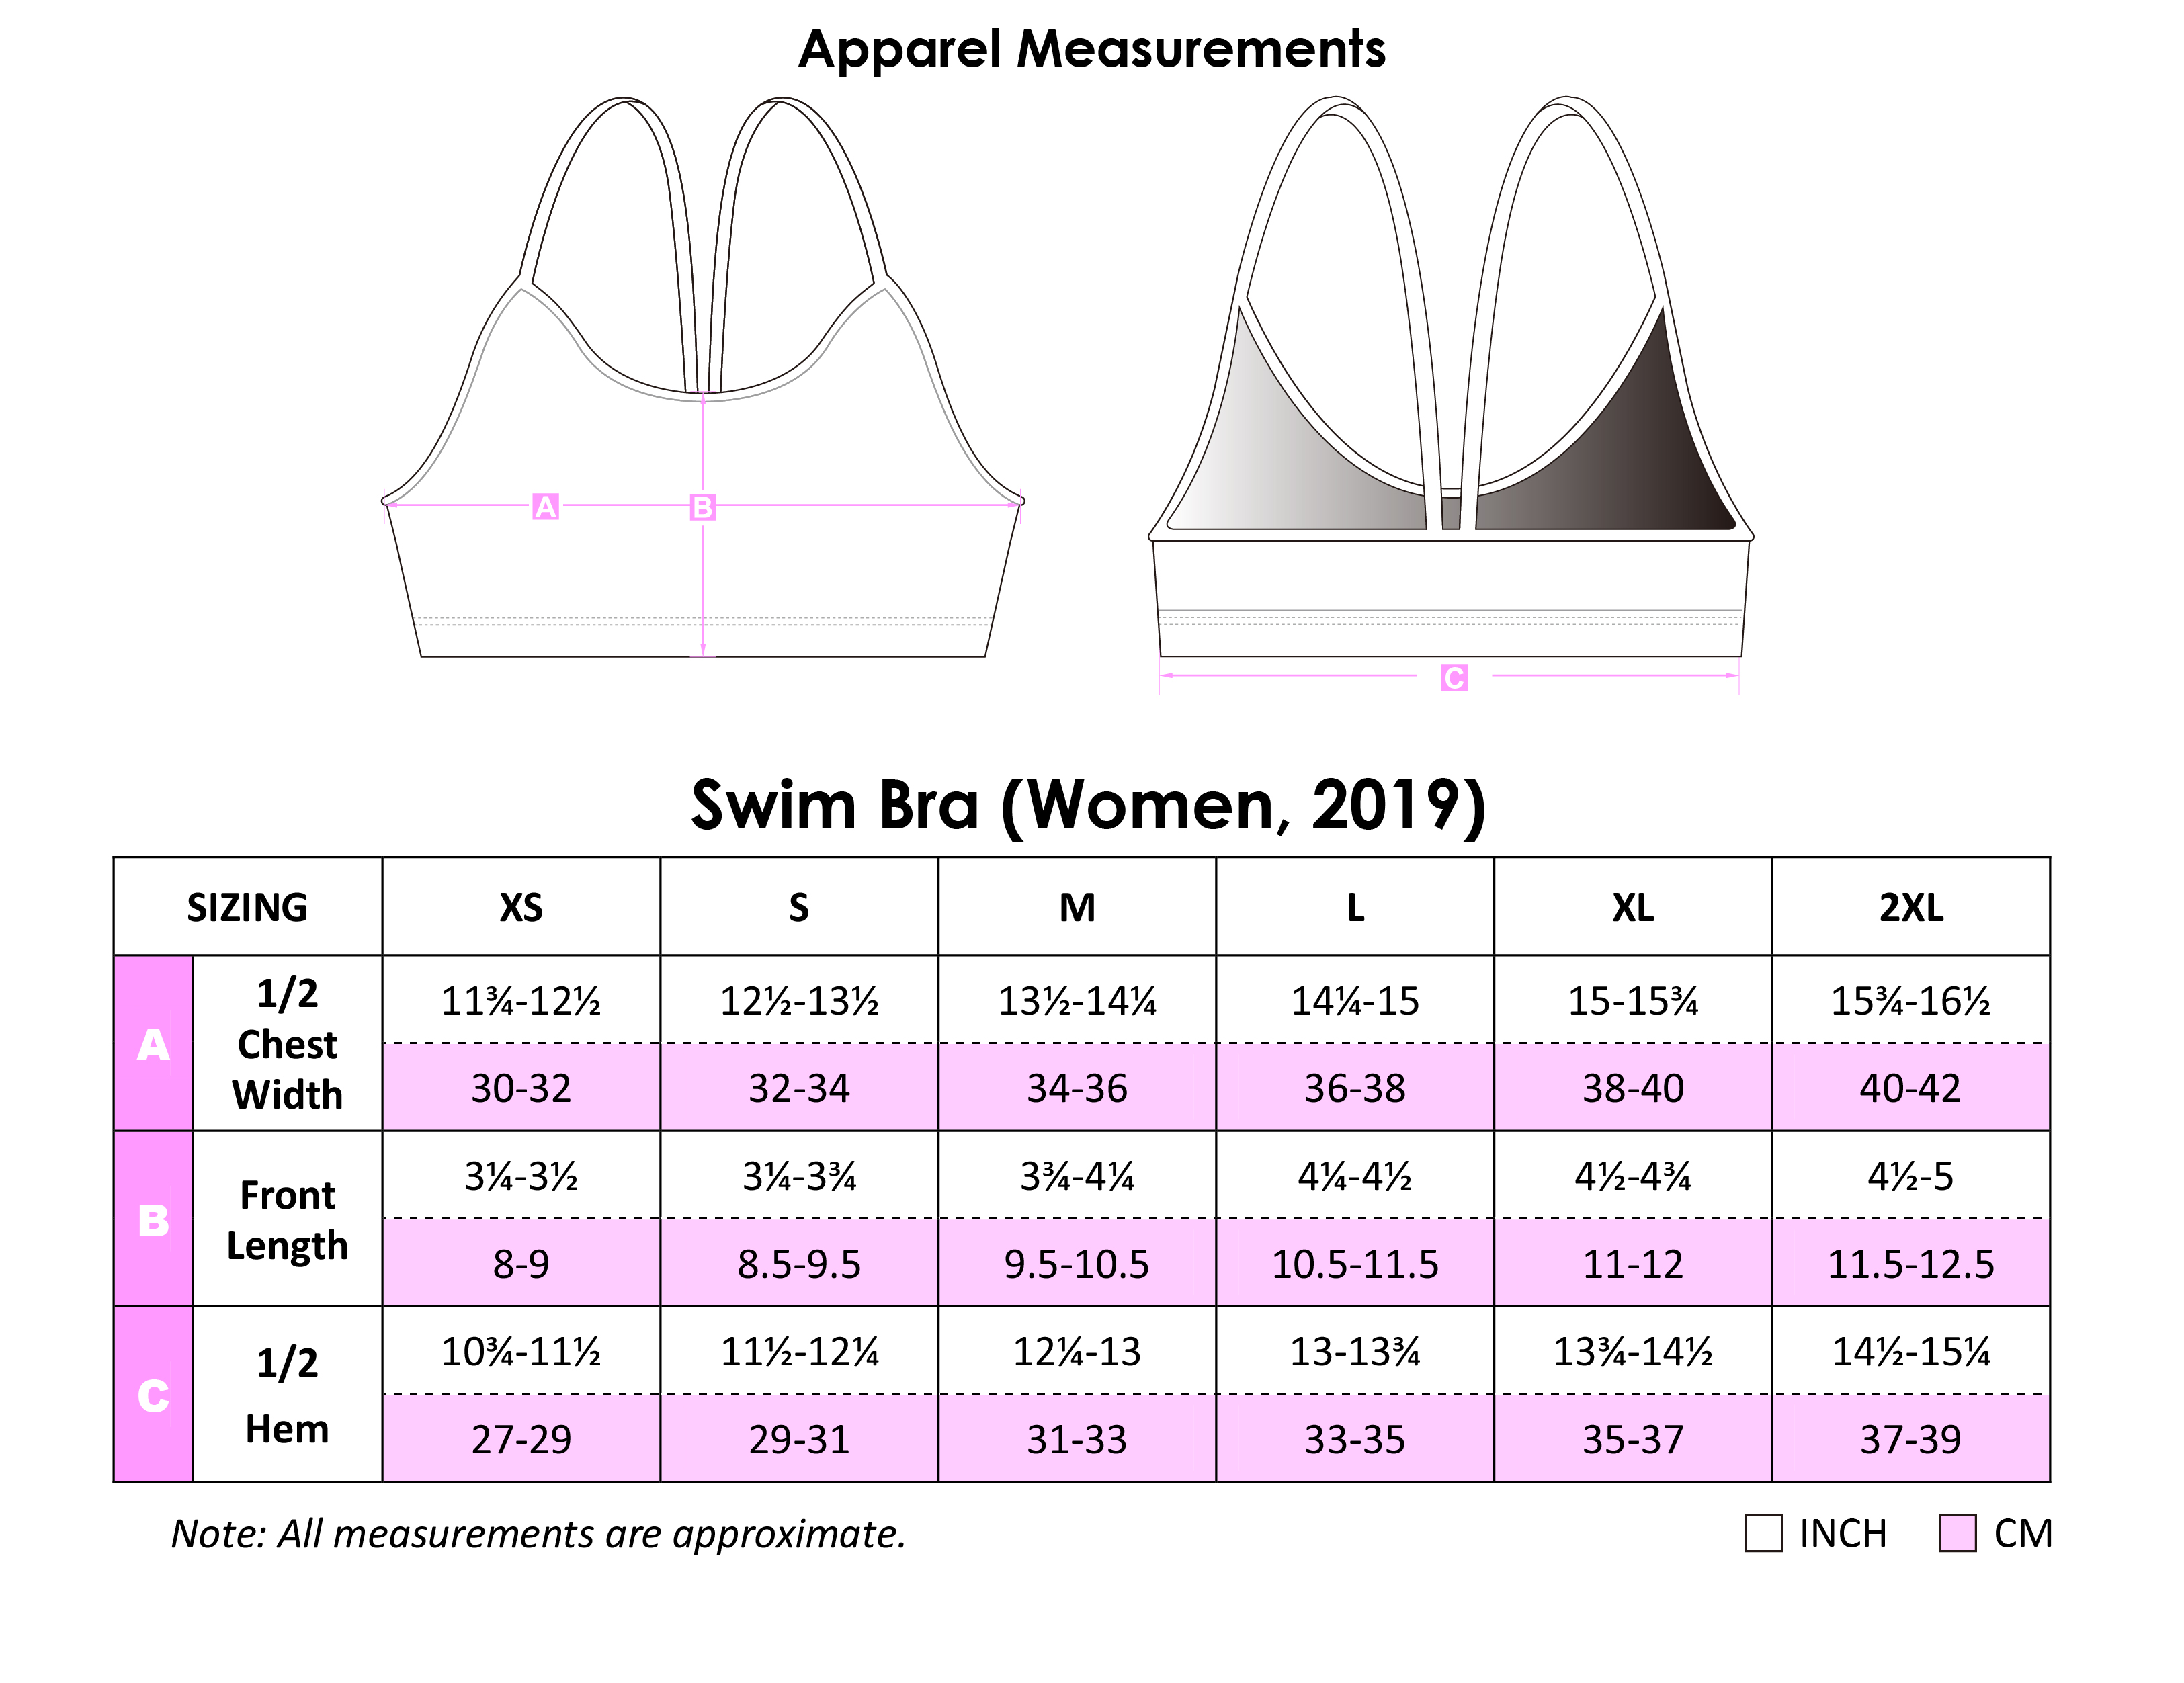 Swim Bra Apparel Size Chart